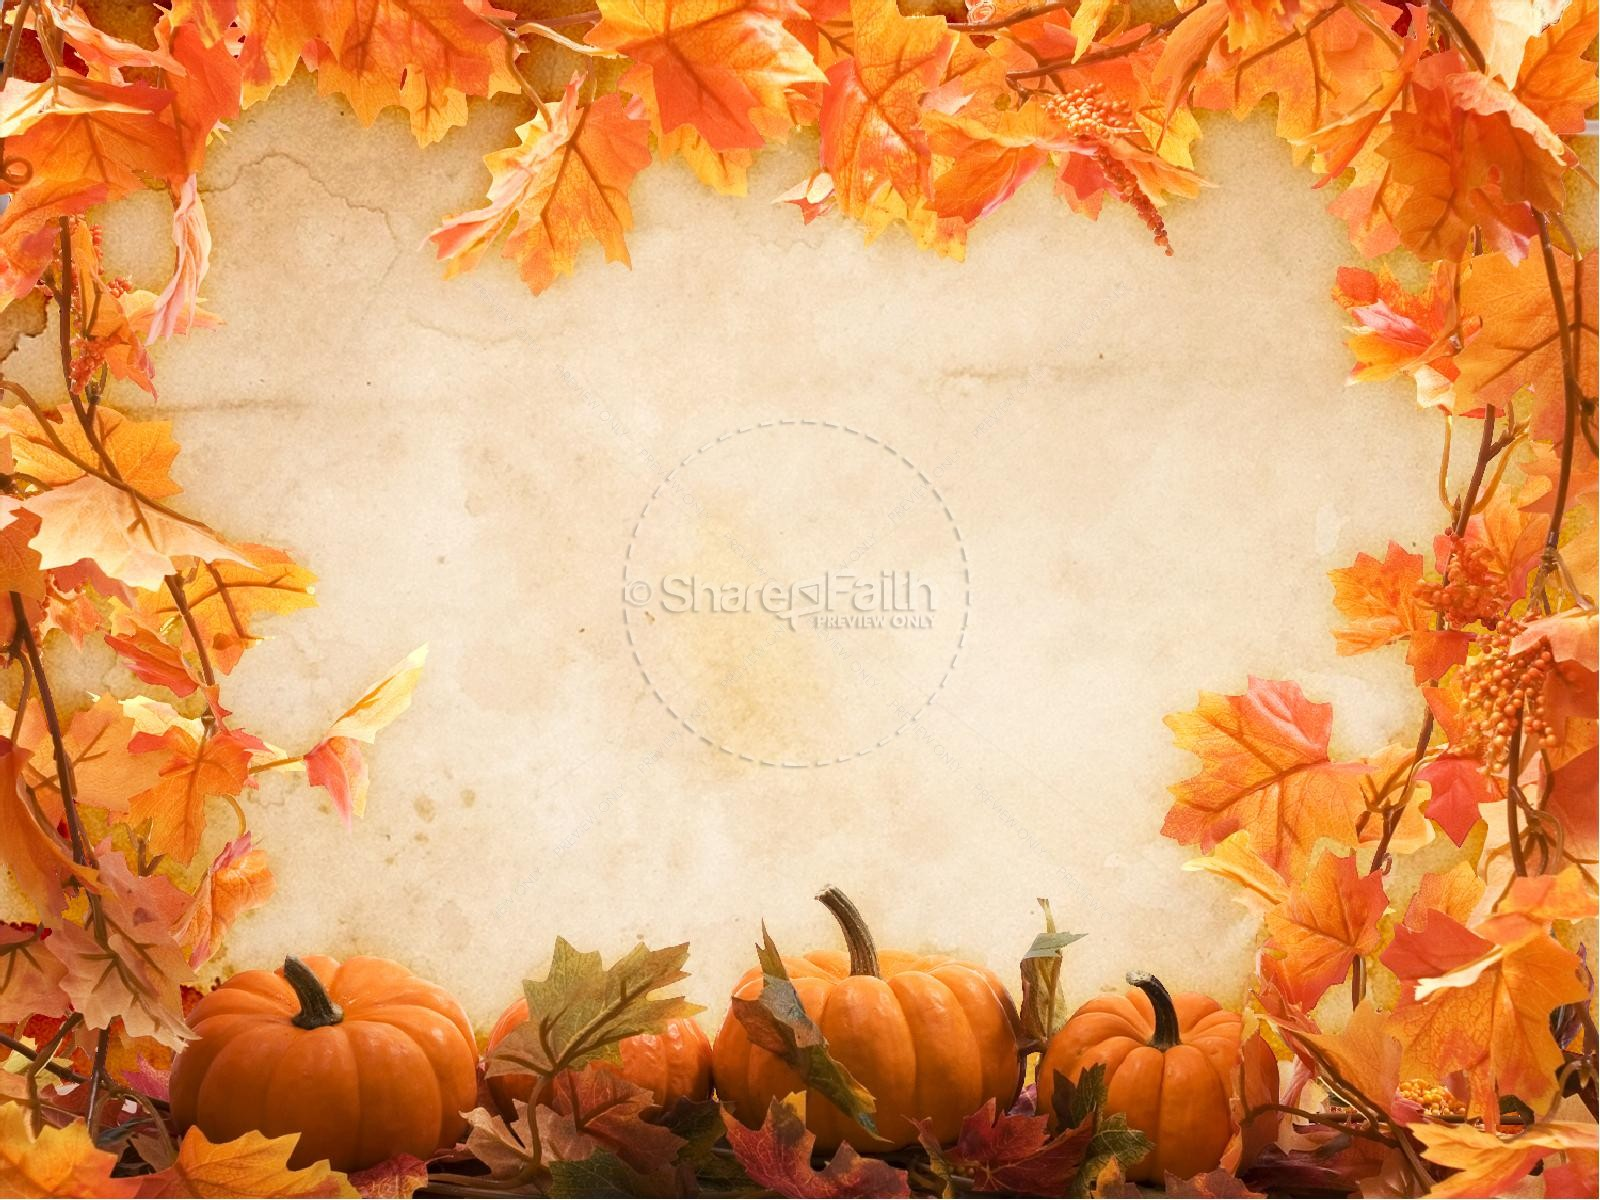 Falling Leaves Live Wallpaper Download Happy Harvest Sermon Powerpoint Fall Thanksgiving